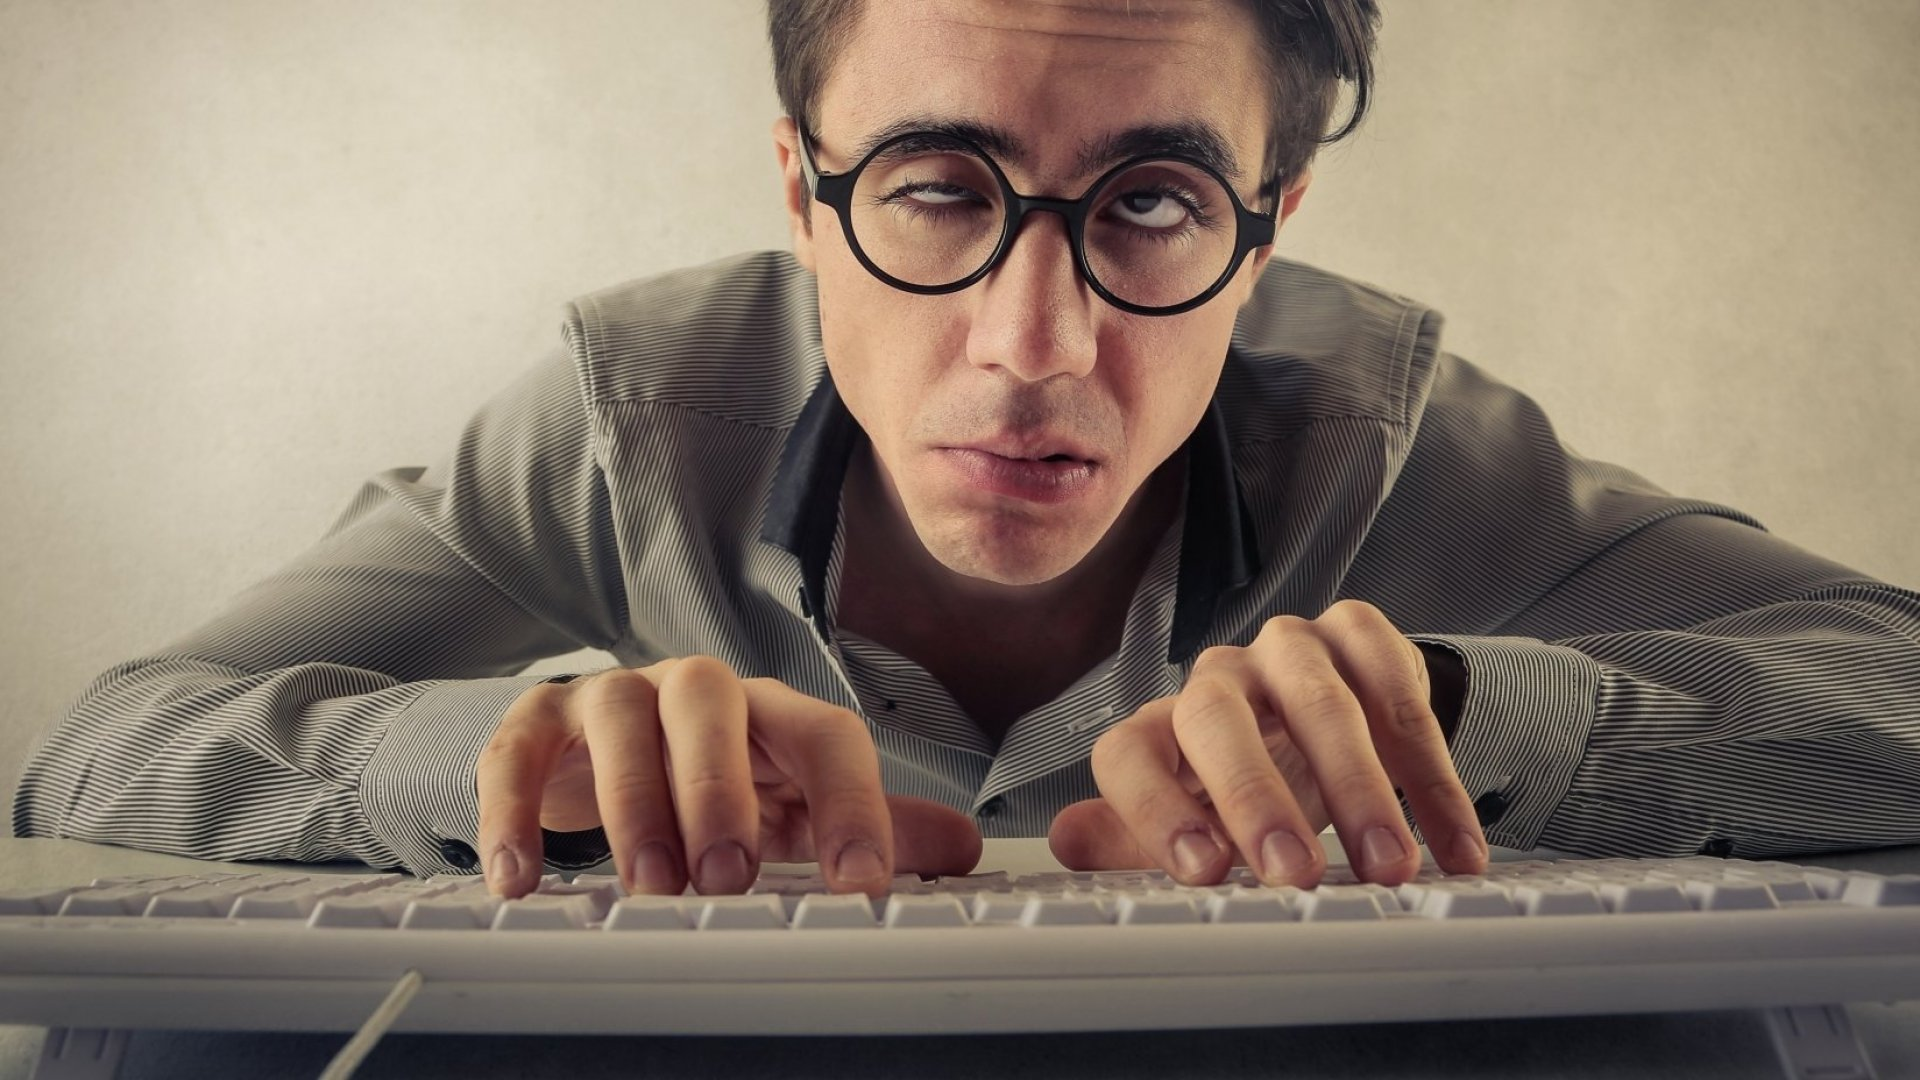 When it comes to sales emails, the less you say, the greater your odds of getting a response.